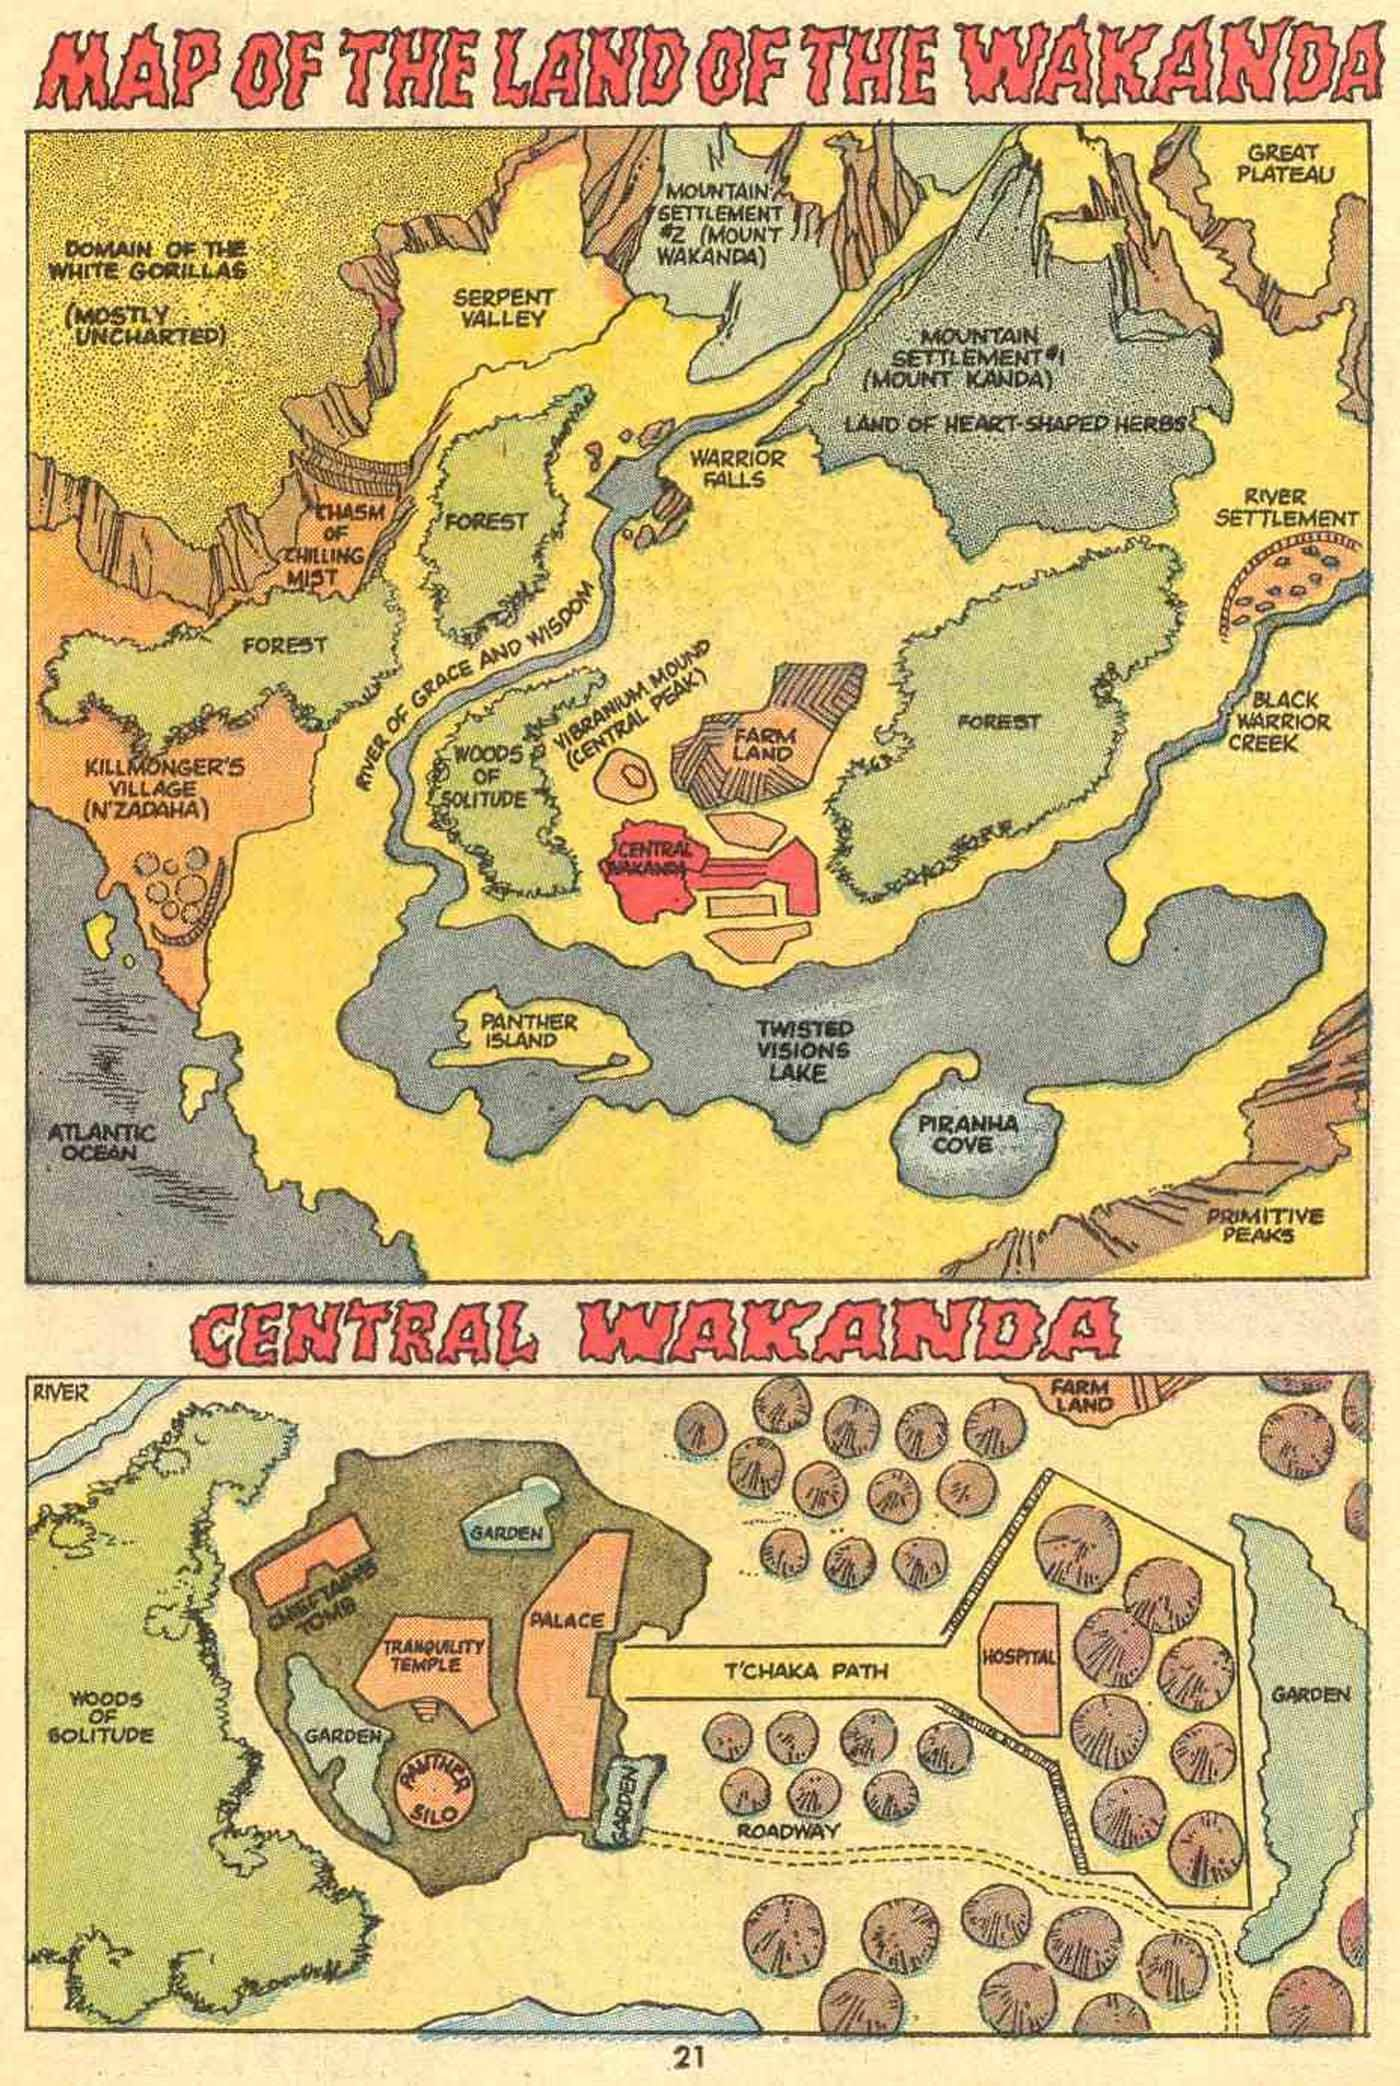 Map Of Wakanda Fictional Africa Country In The Marvel Comics